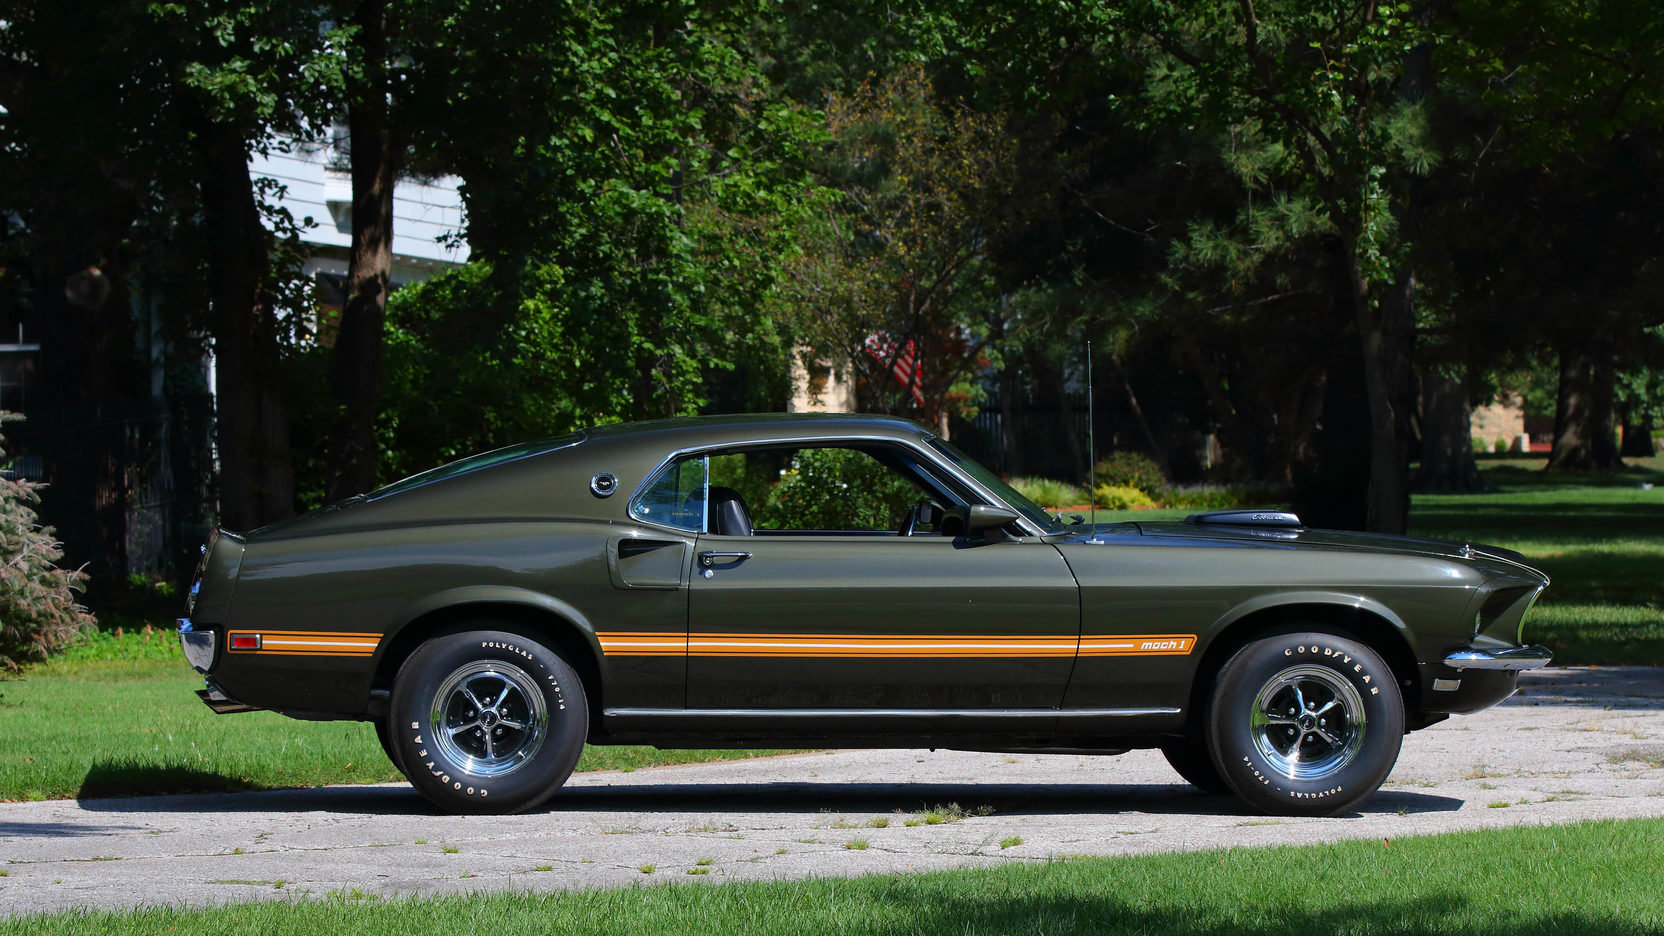 1969 Mustang Mach 1 428 Cobra Jet Project For Sale (picture 8 of 12)